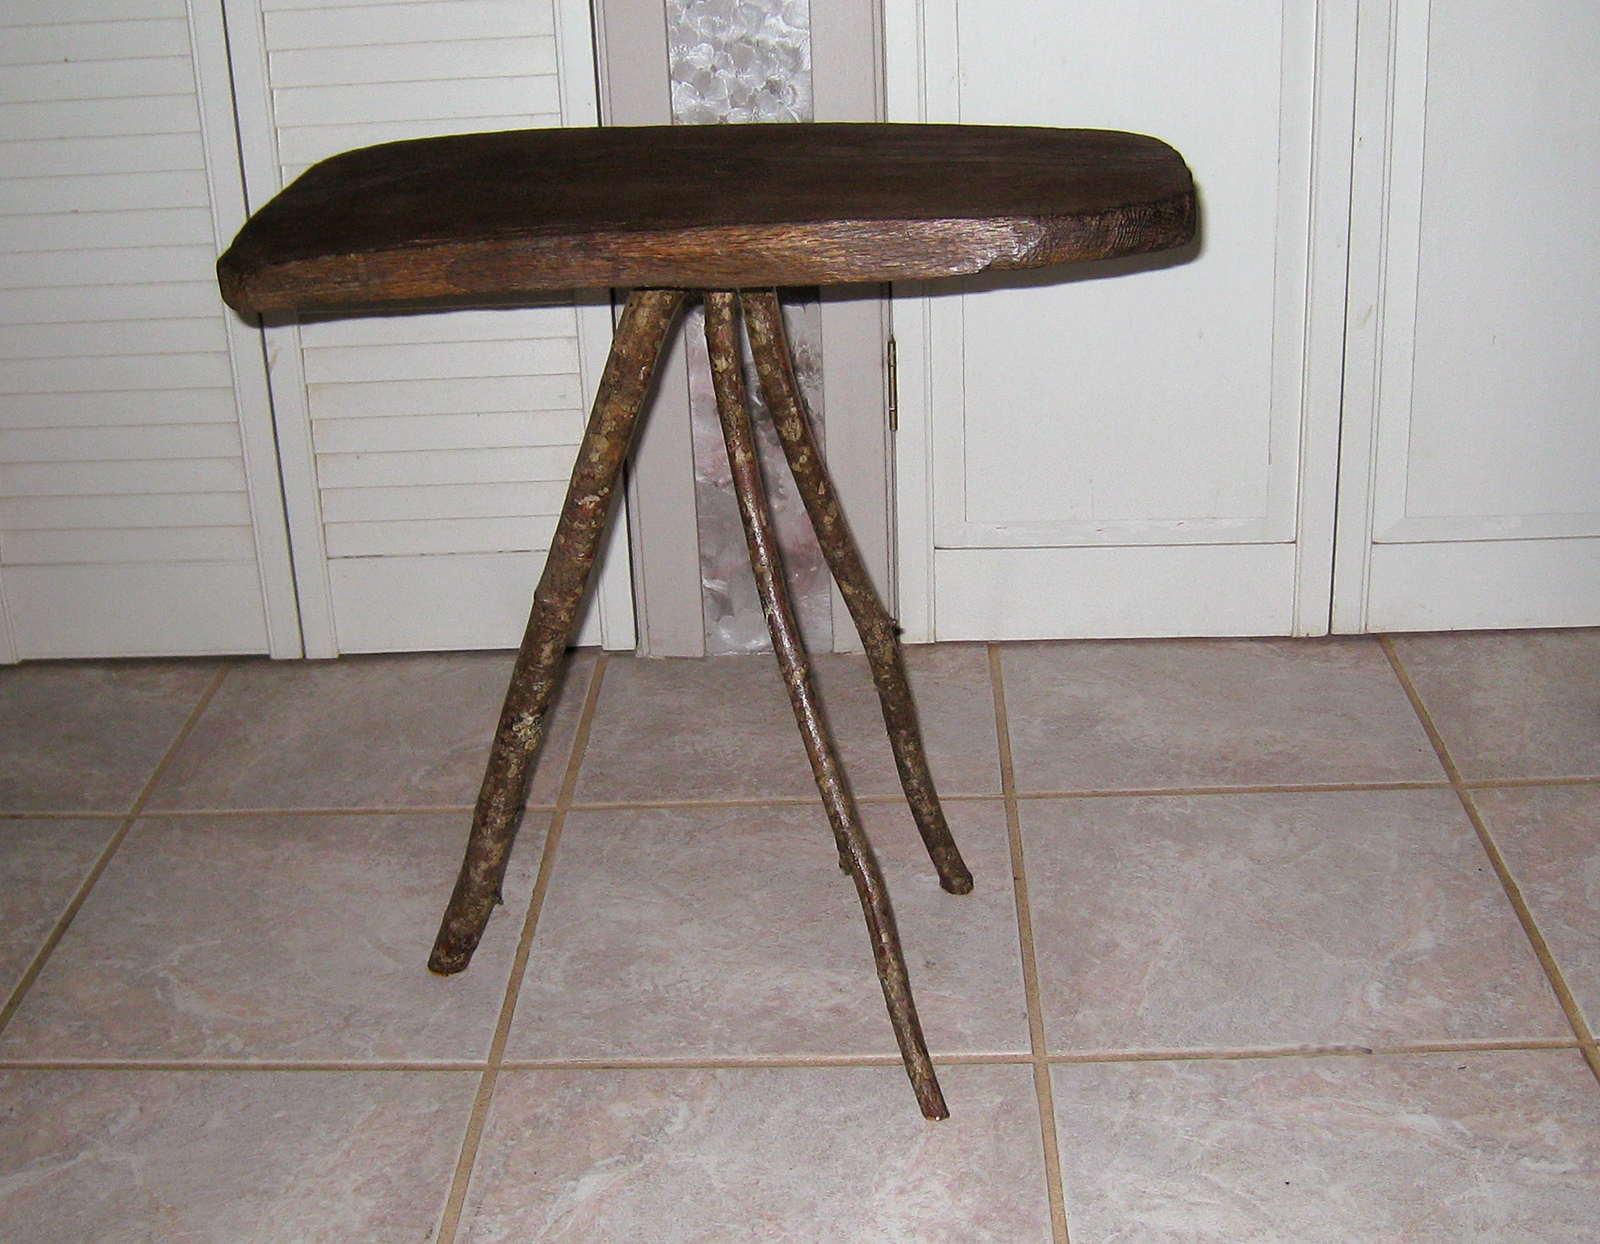 small twig stands,$30.-$40.